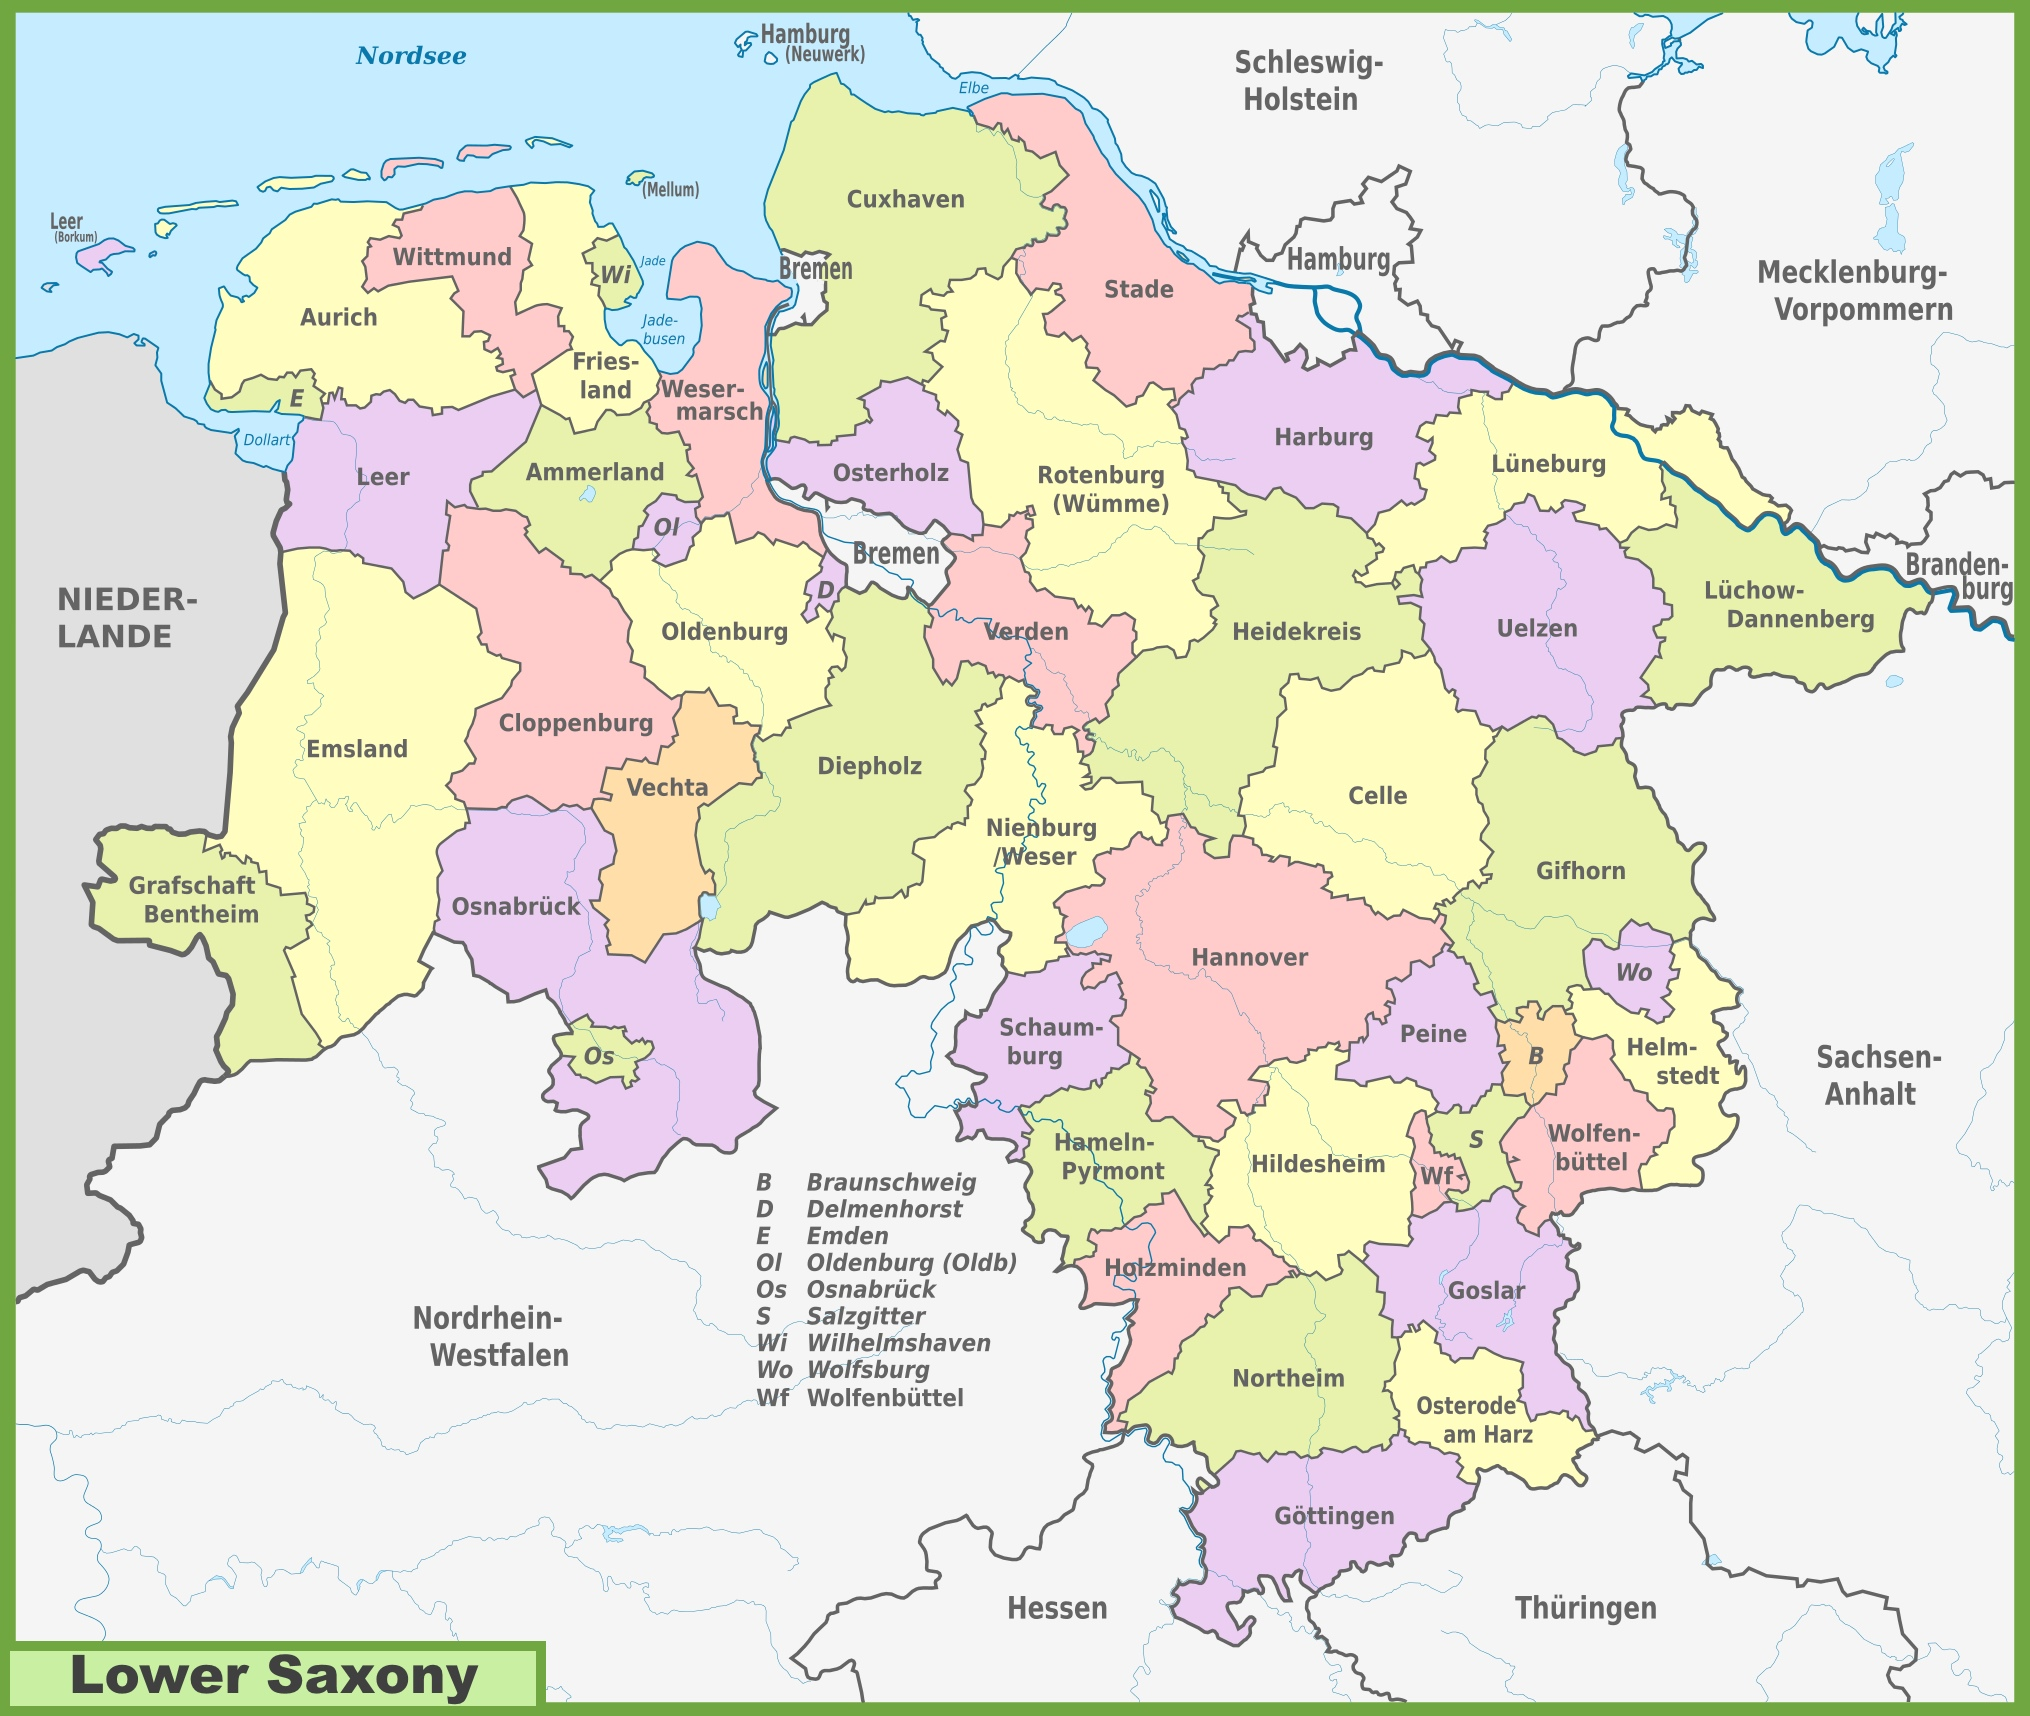 Administrative divisions map of Lower Saxony